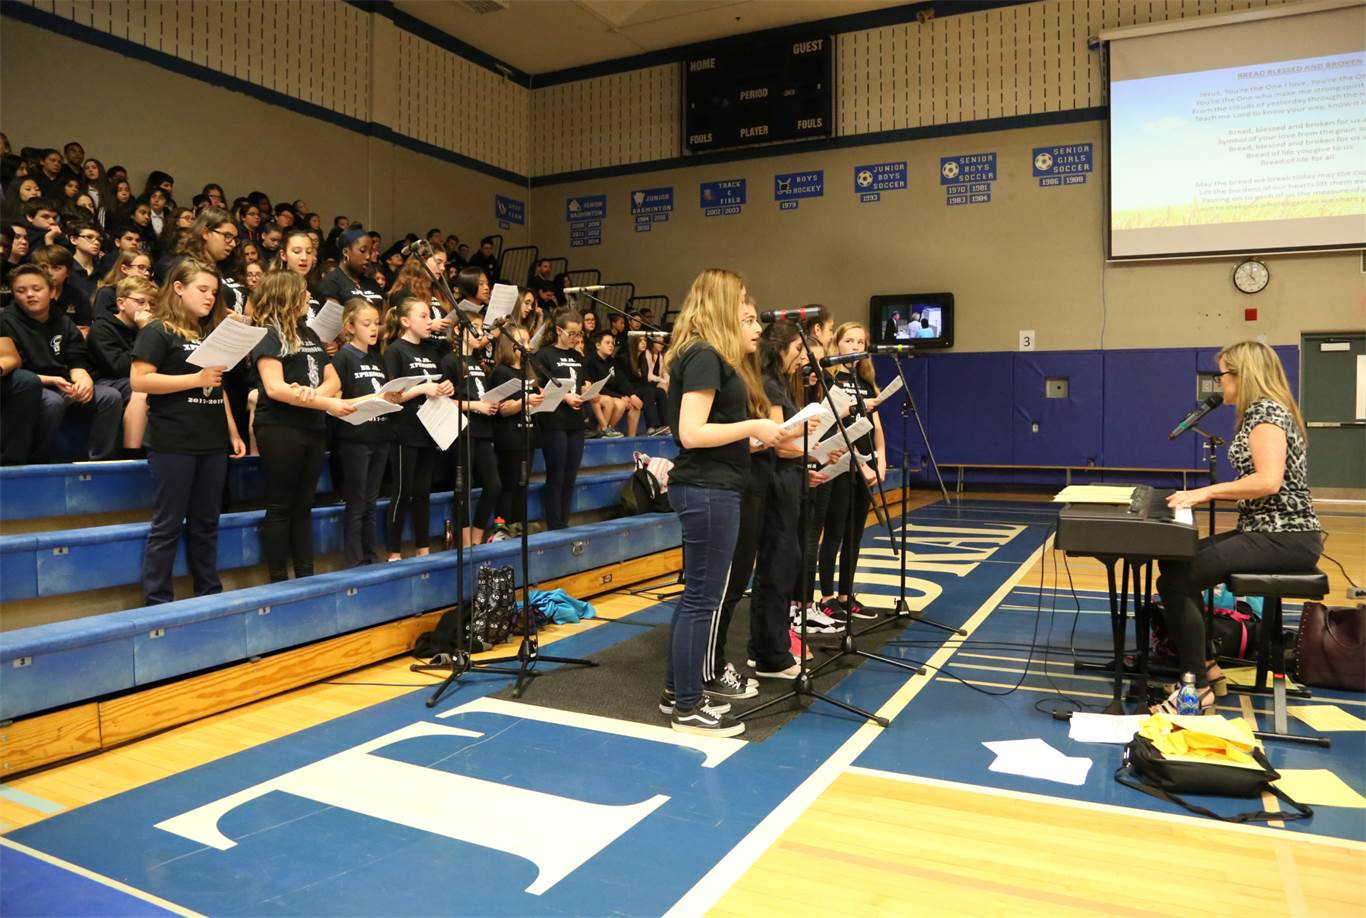 Music for the Catholic Education Week Opening Mass was provided by the BR Jr. Xpression under the direction of Mary Tabone. Photo by Jenna Madalena.